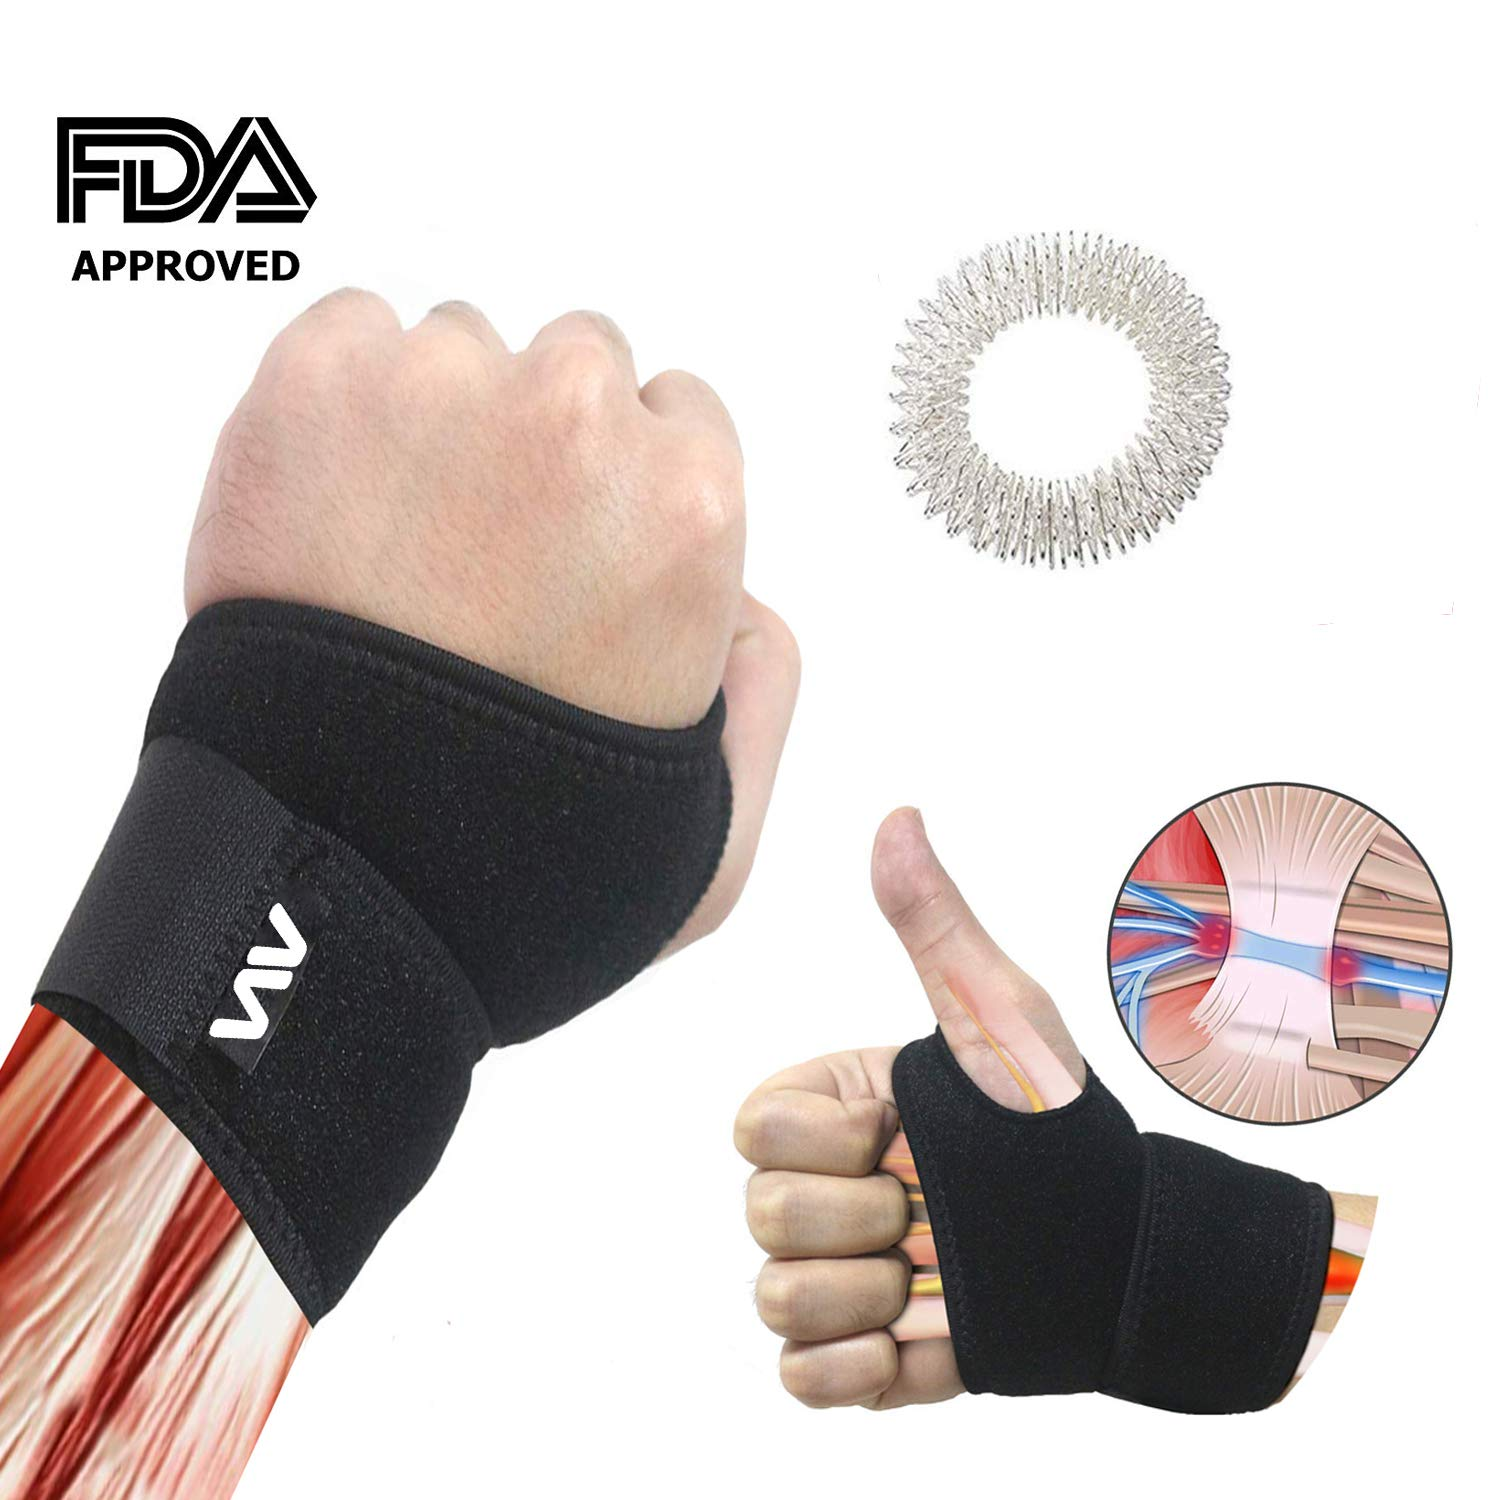 Great wrist brace that is affordable